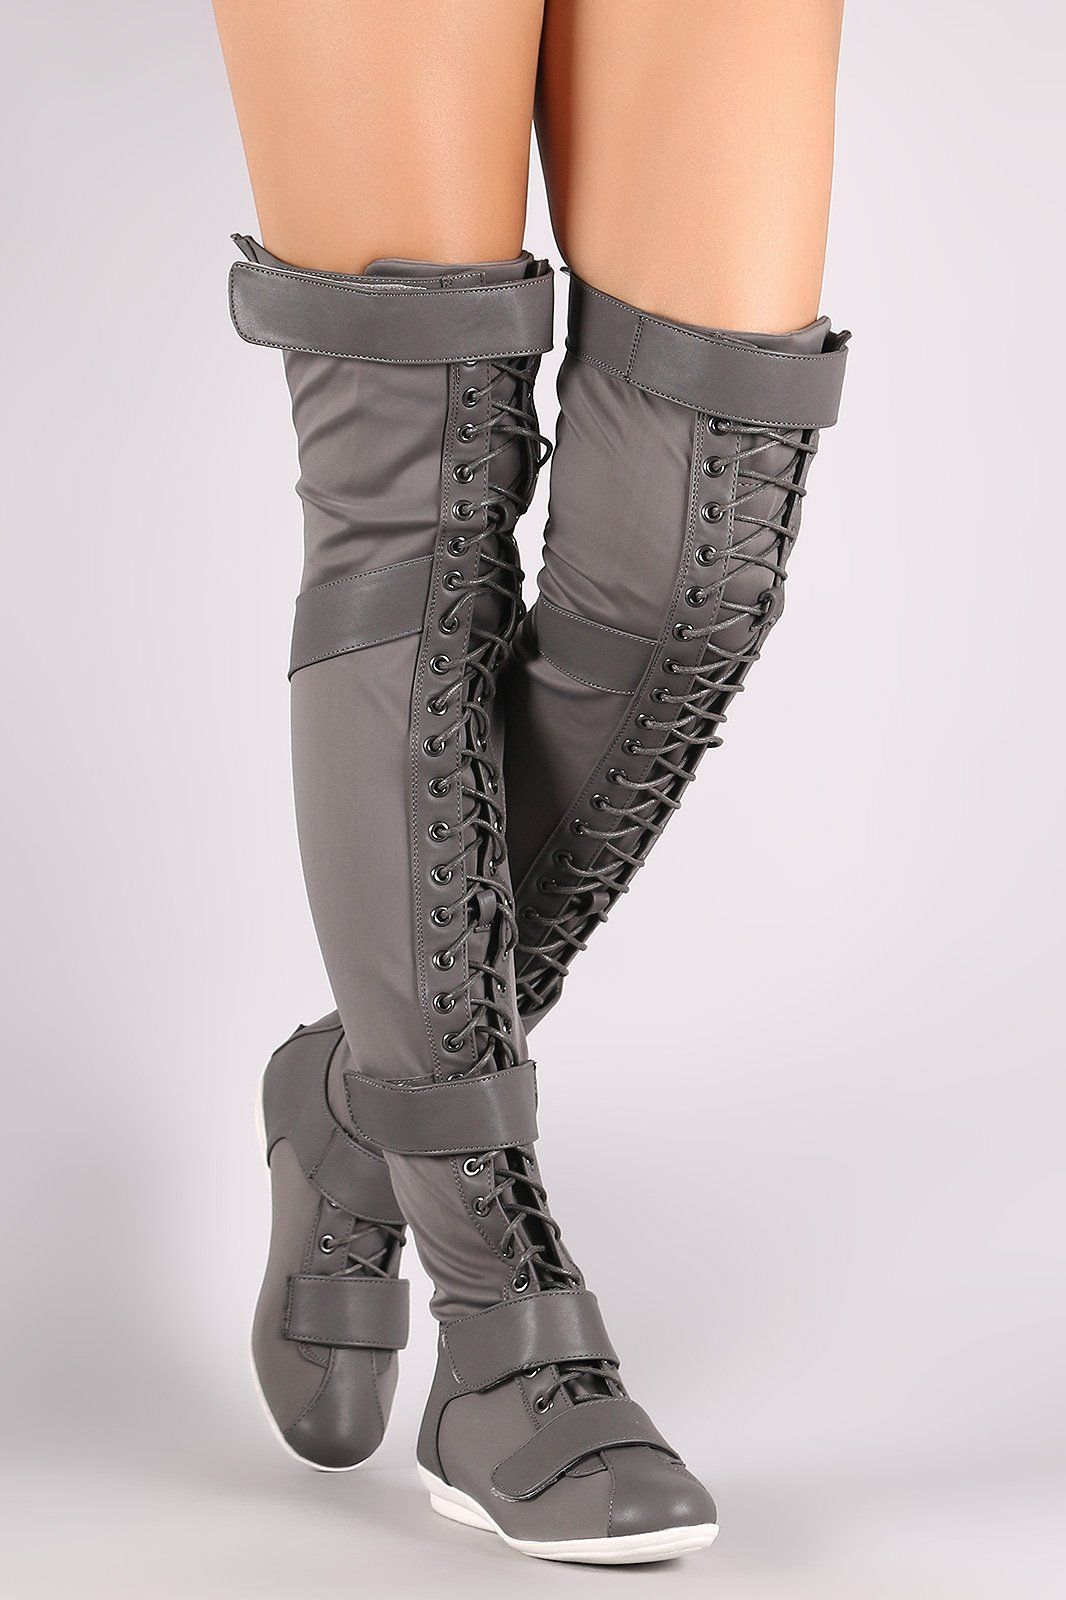 Liliana Hook And Loop Lace Up Strappy OverTheKnee Flat